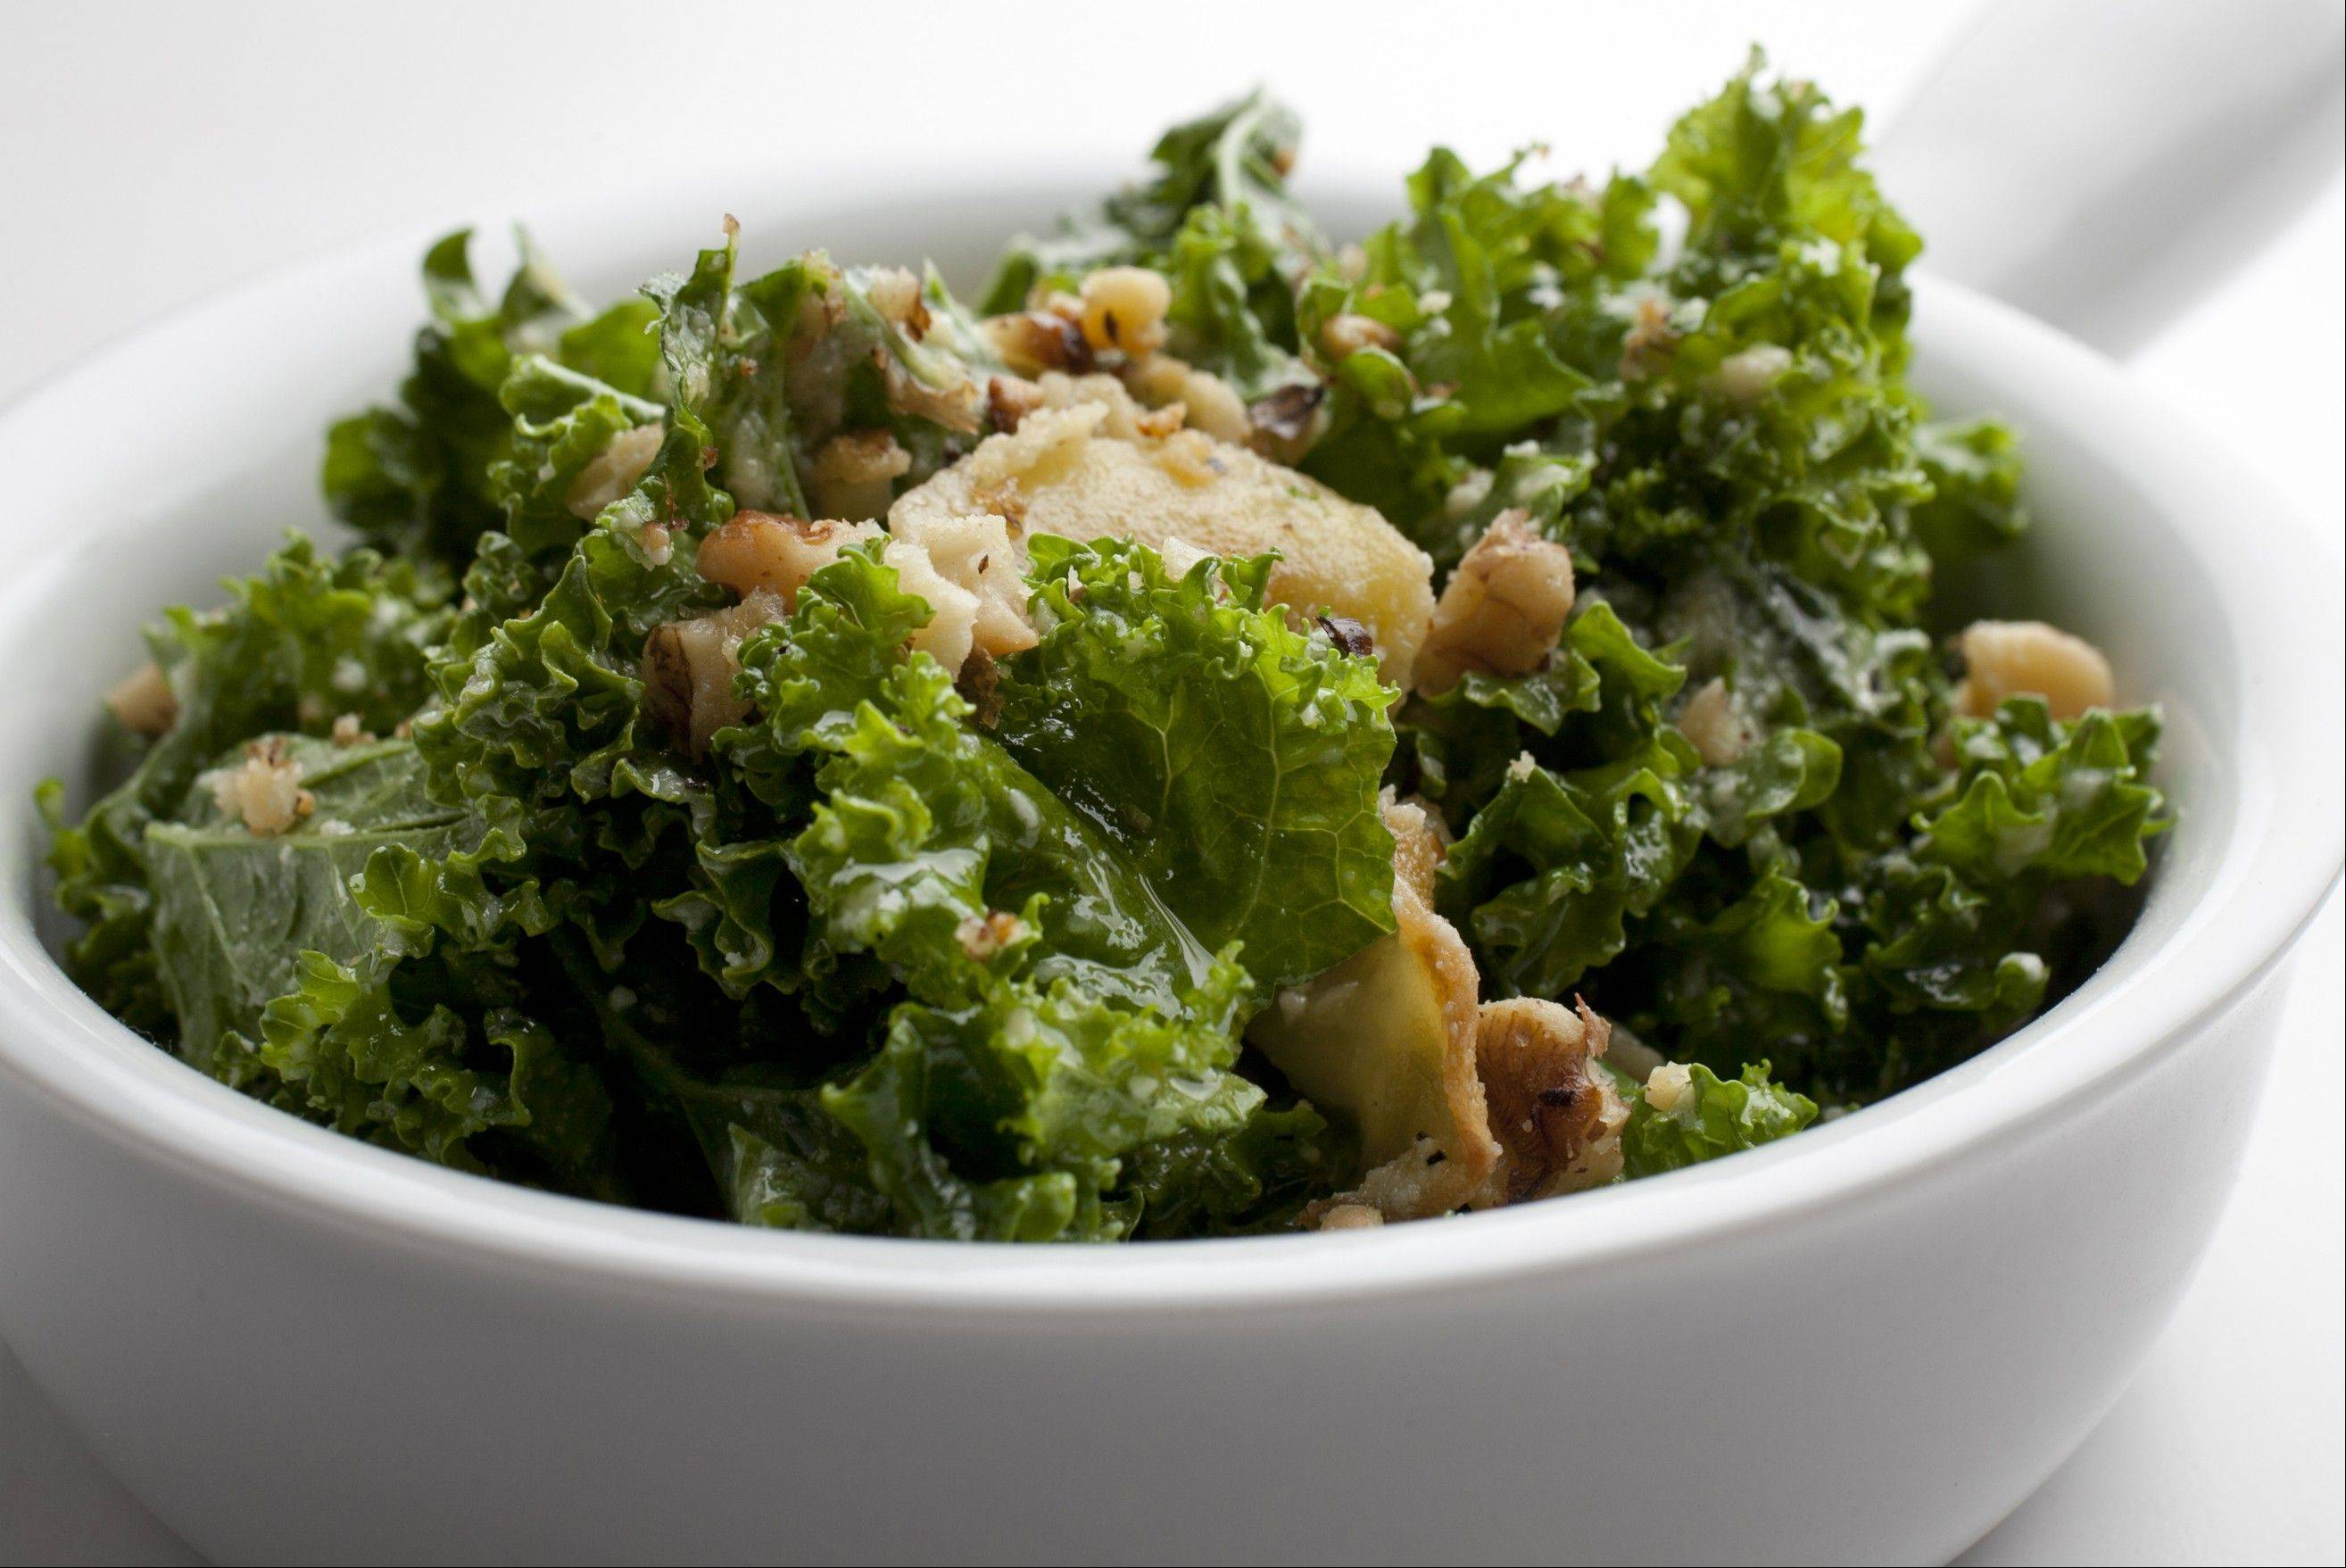 Marlow & Sons Tuscan kale salad. Illustrates FOOD-BOOK (category d), by Bonnie S. Benwick (c) 2011, The Washington Post. Moved Monday, Oct. 17, 2011. (MUST CREDIT: Photo for The Washington Post by Deb Lindsey.)